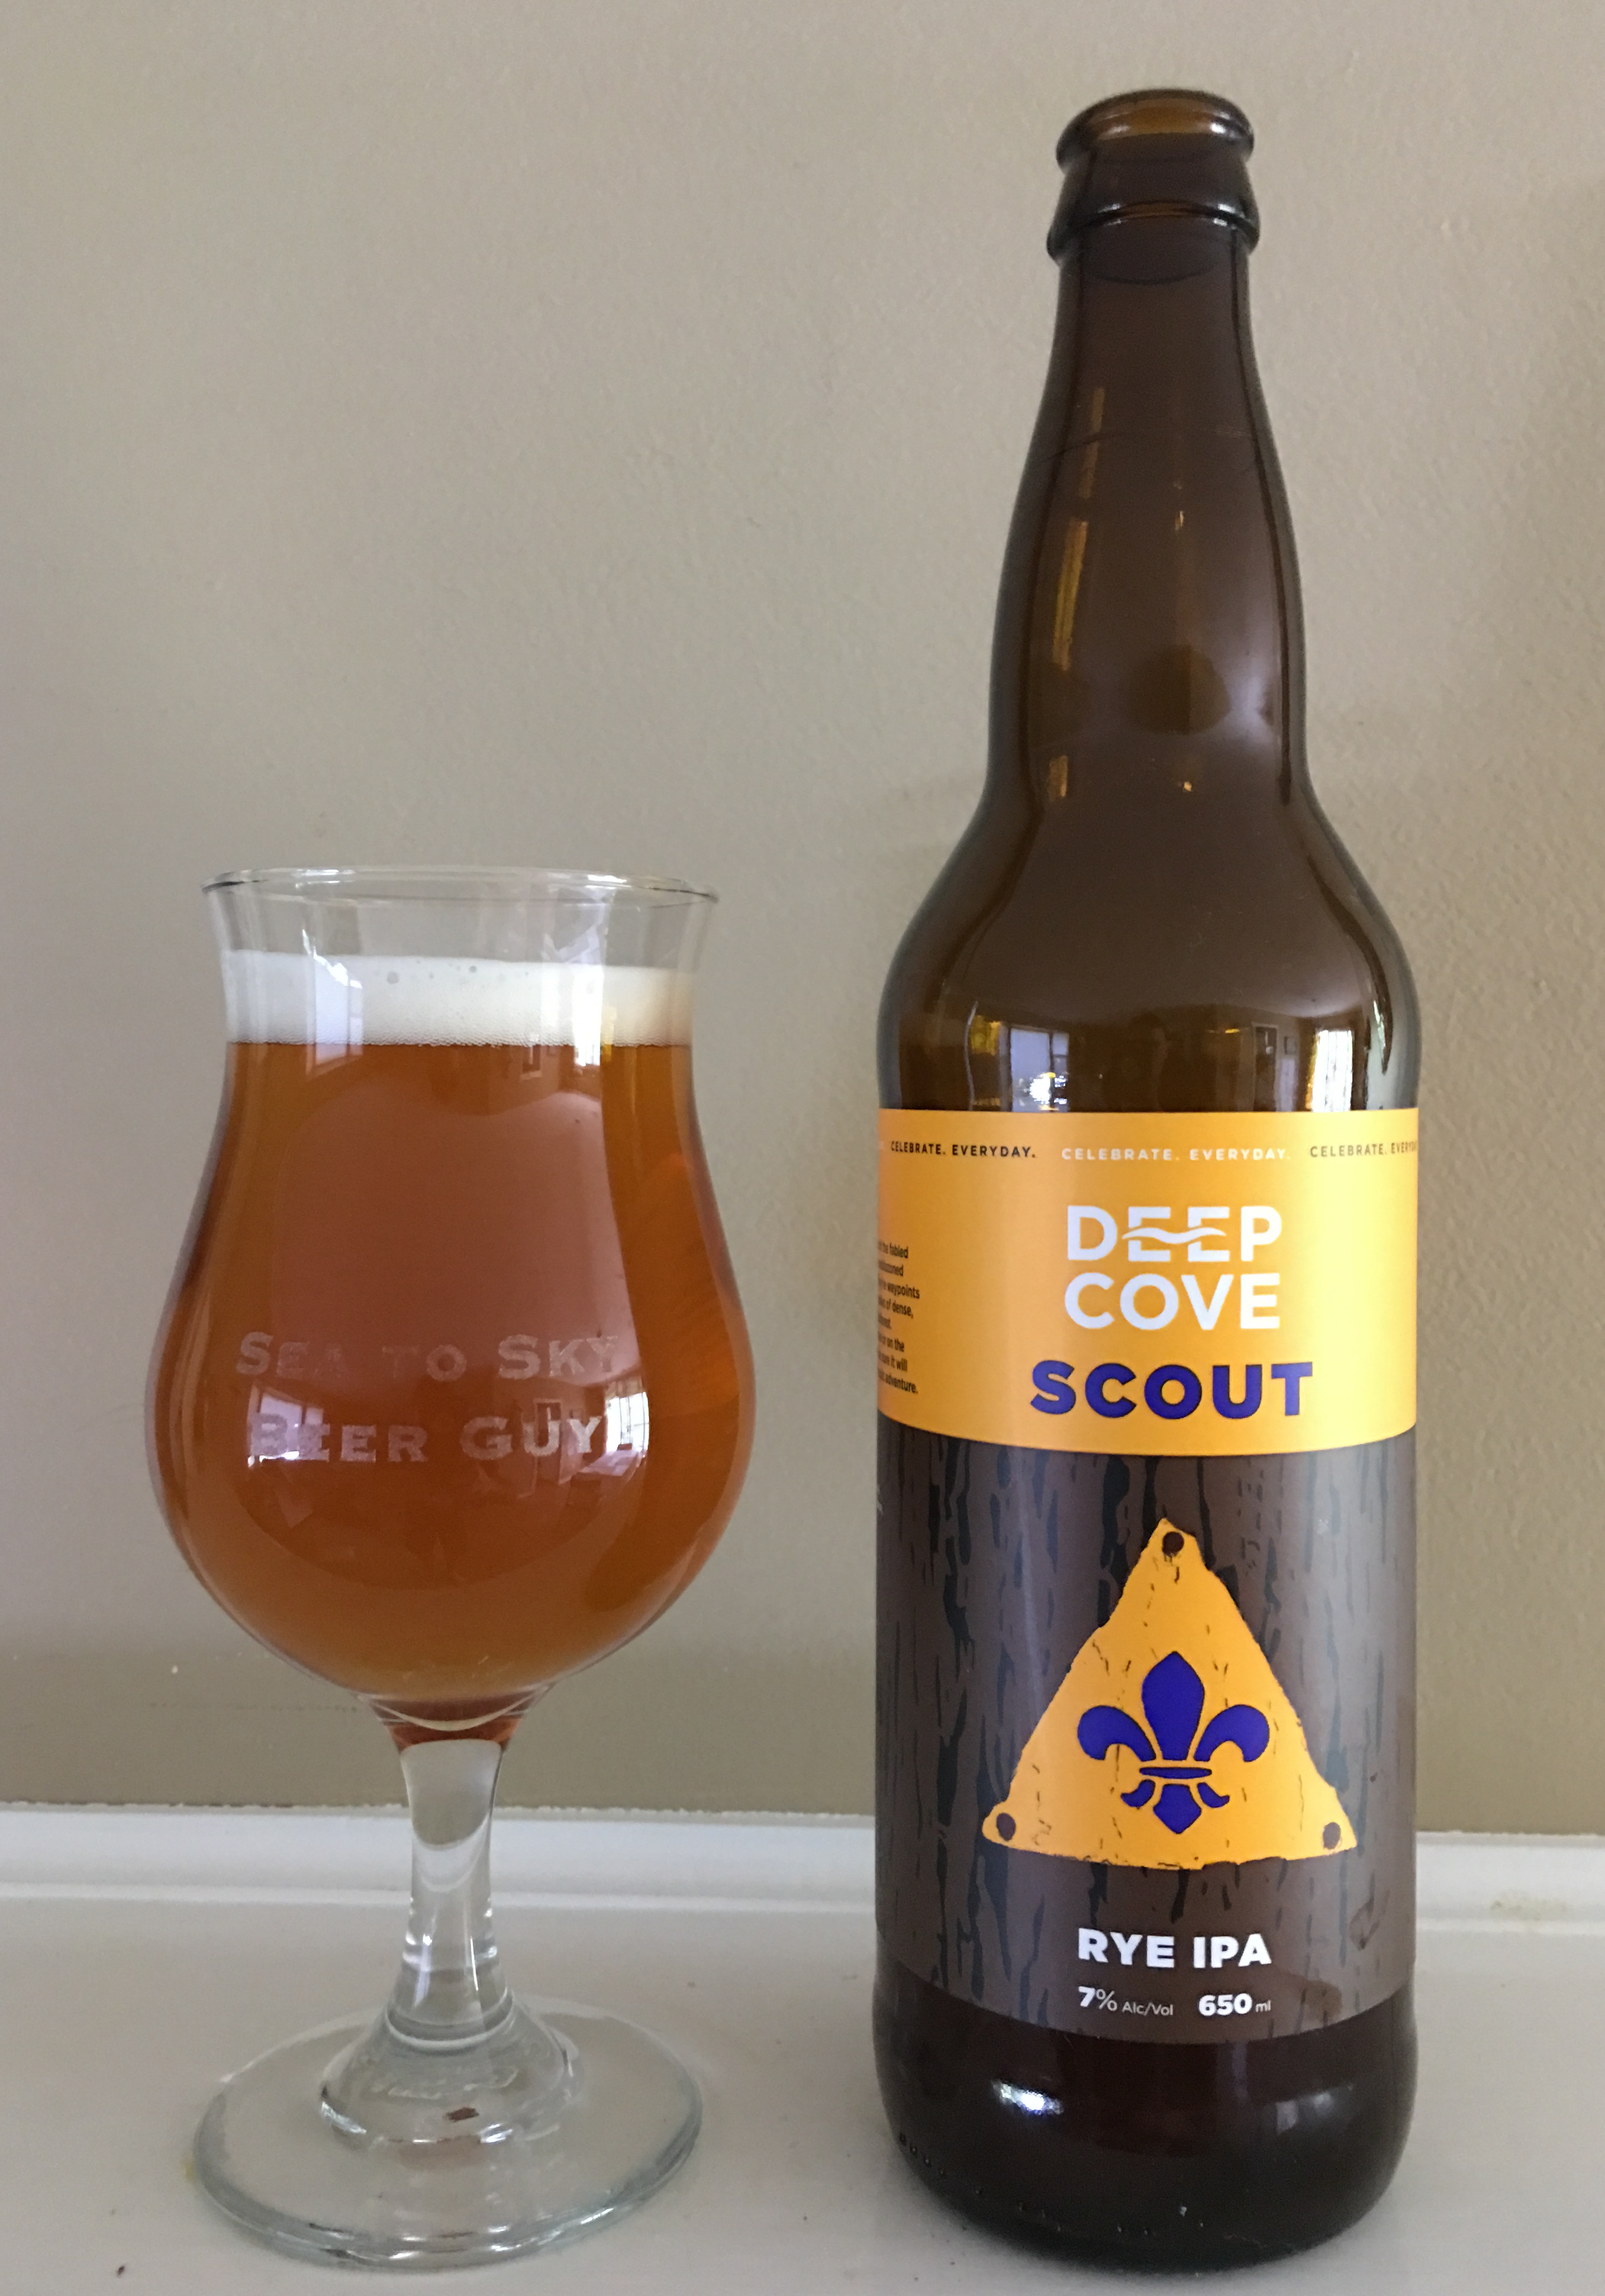 Scout, a Rye IPA by Deep Cove